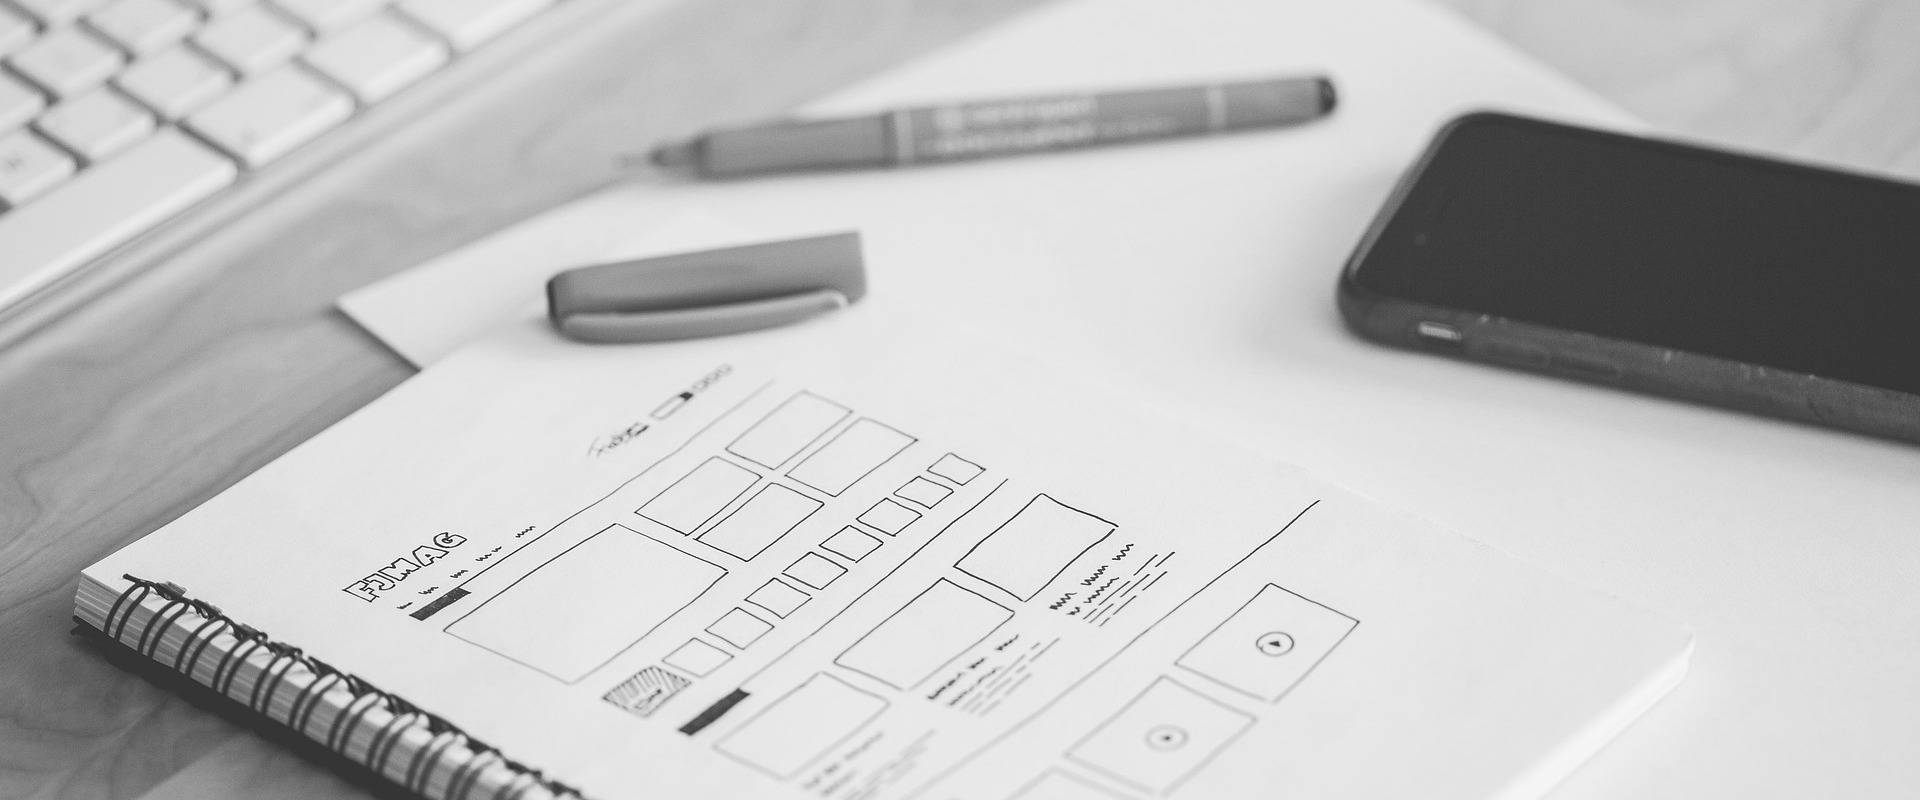 Website design wireframe on notebook paper